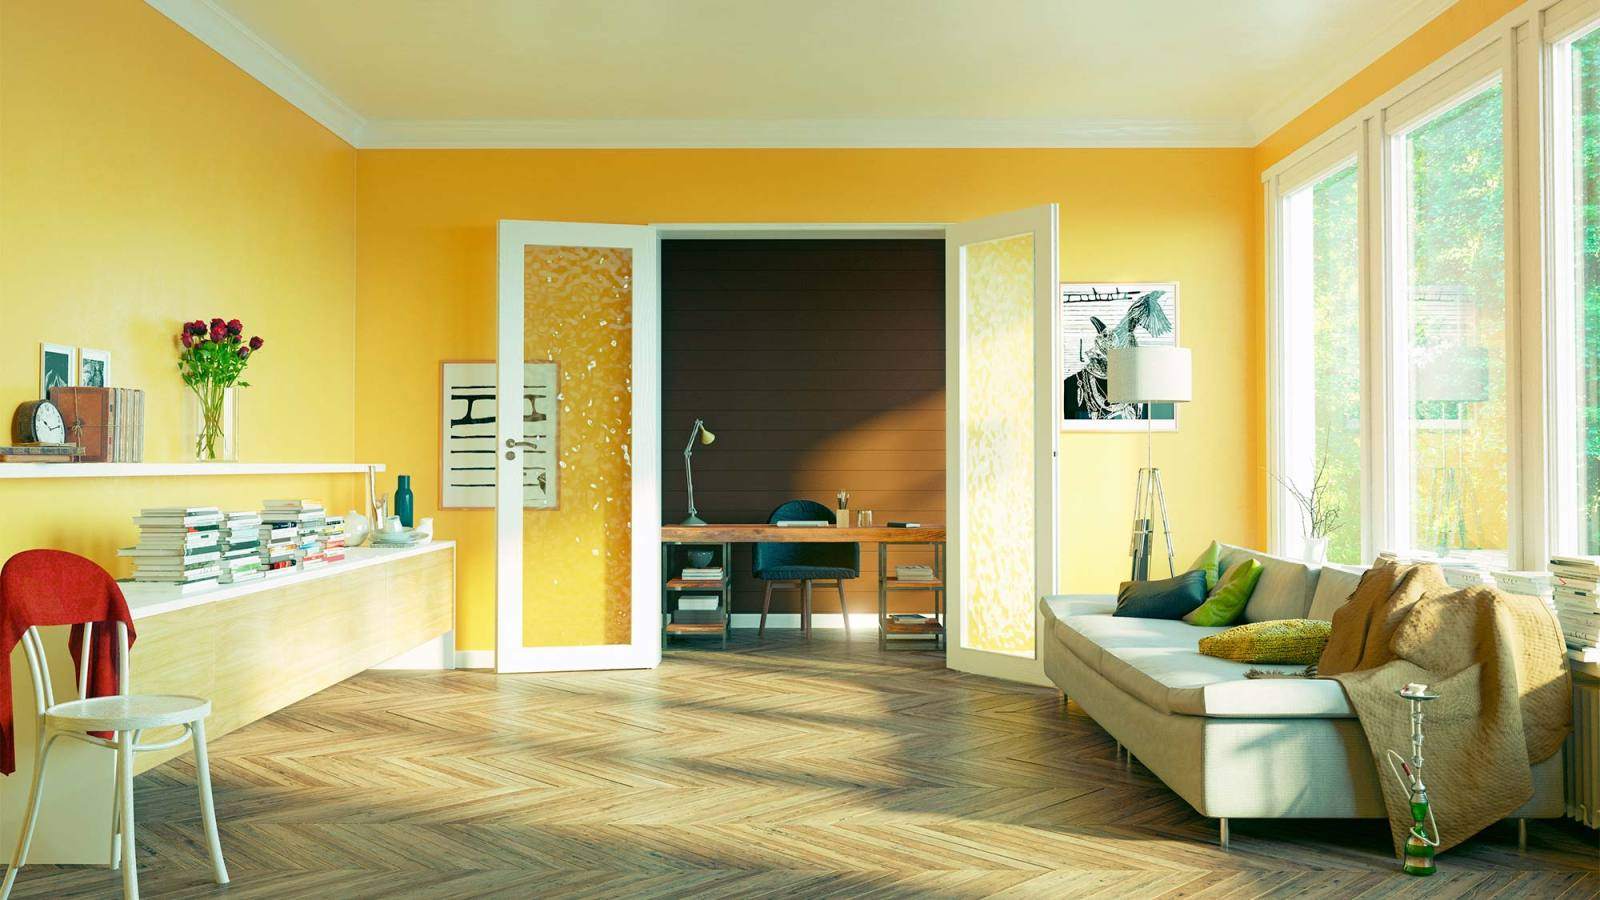 Living room painted in yellow.